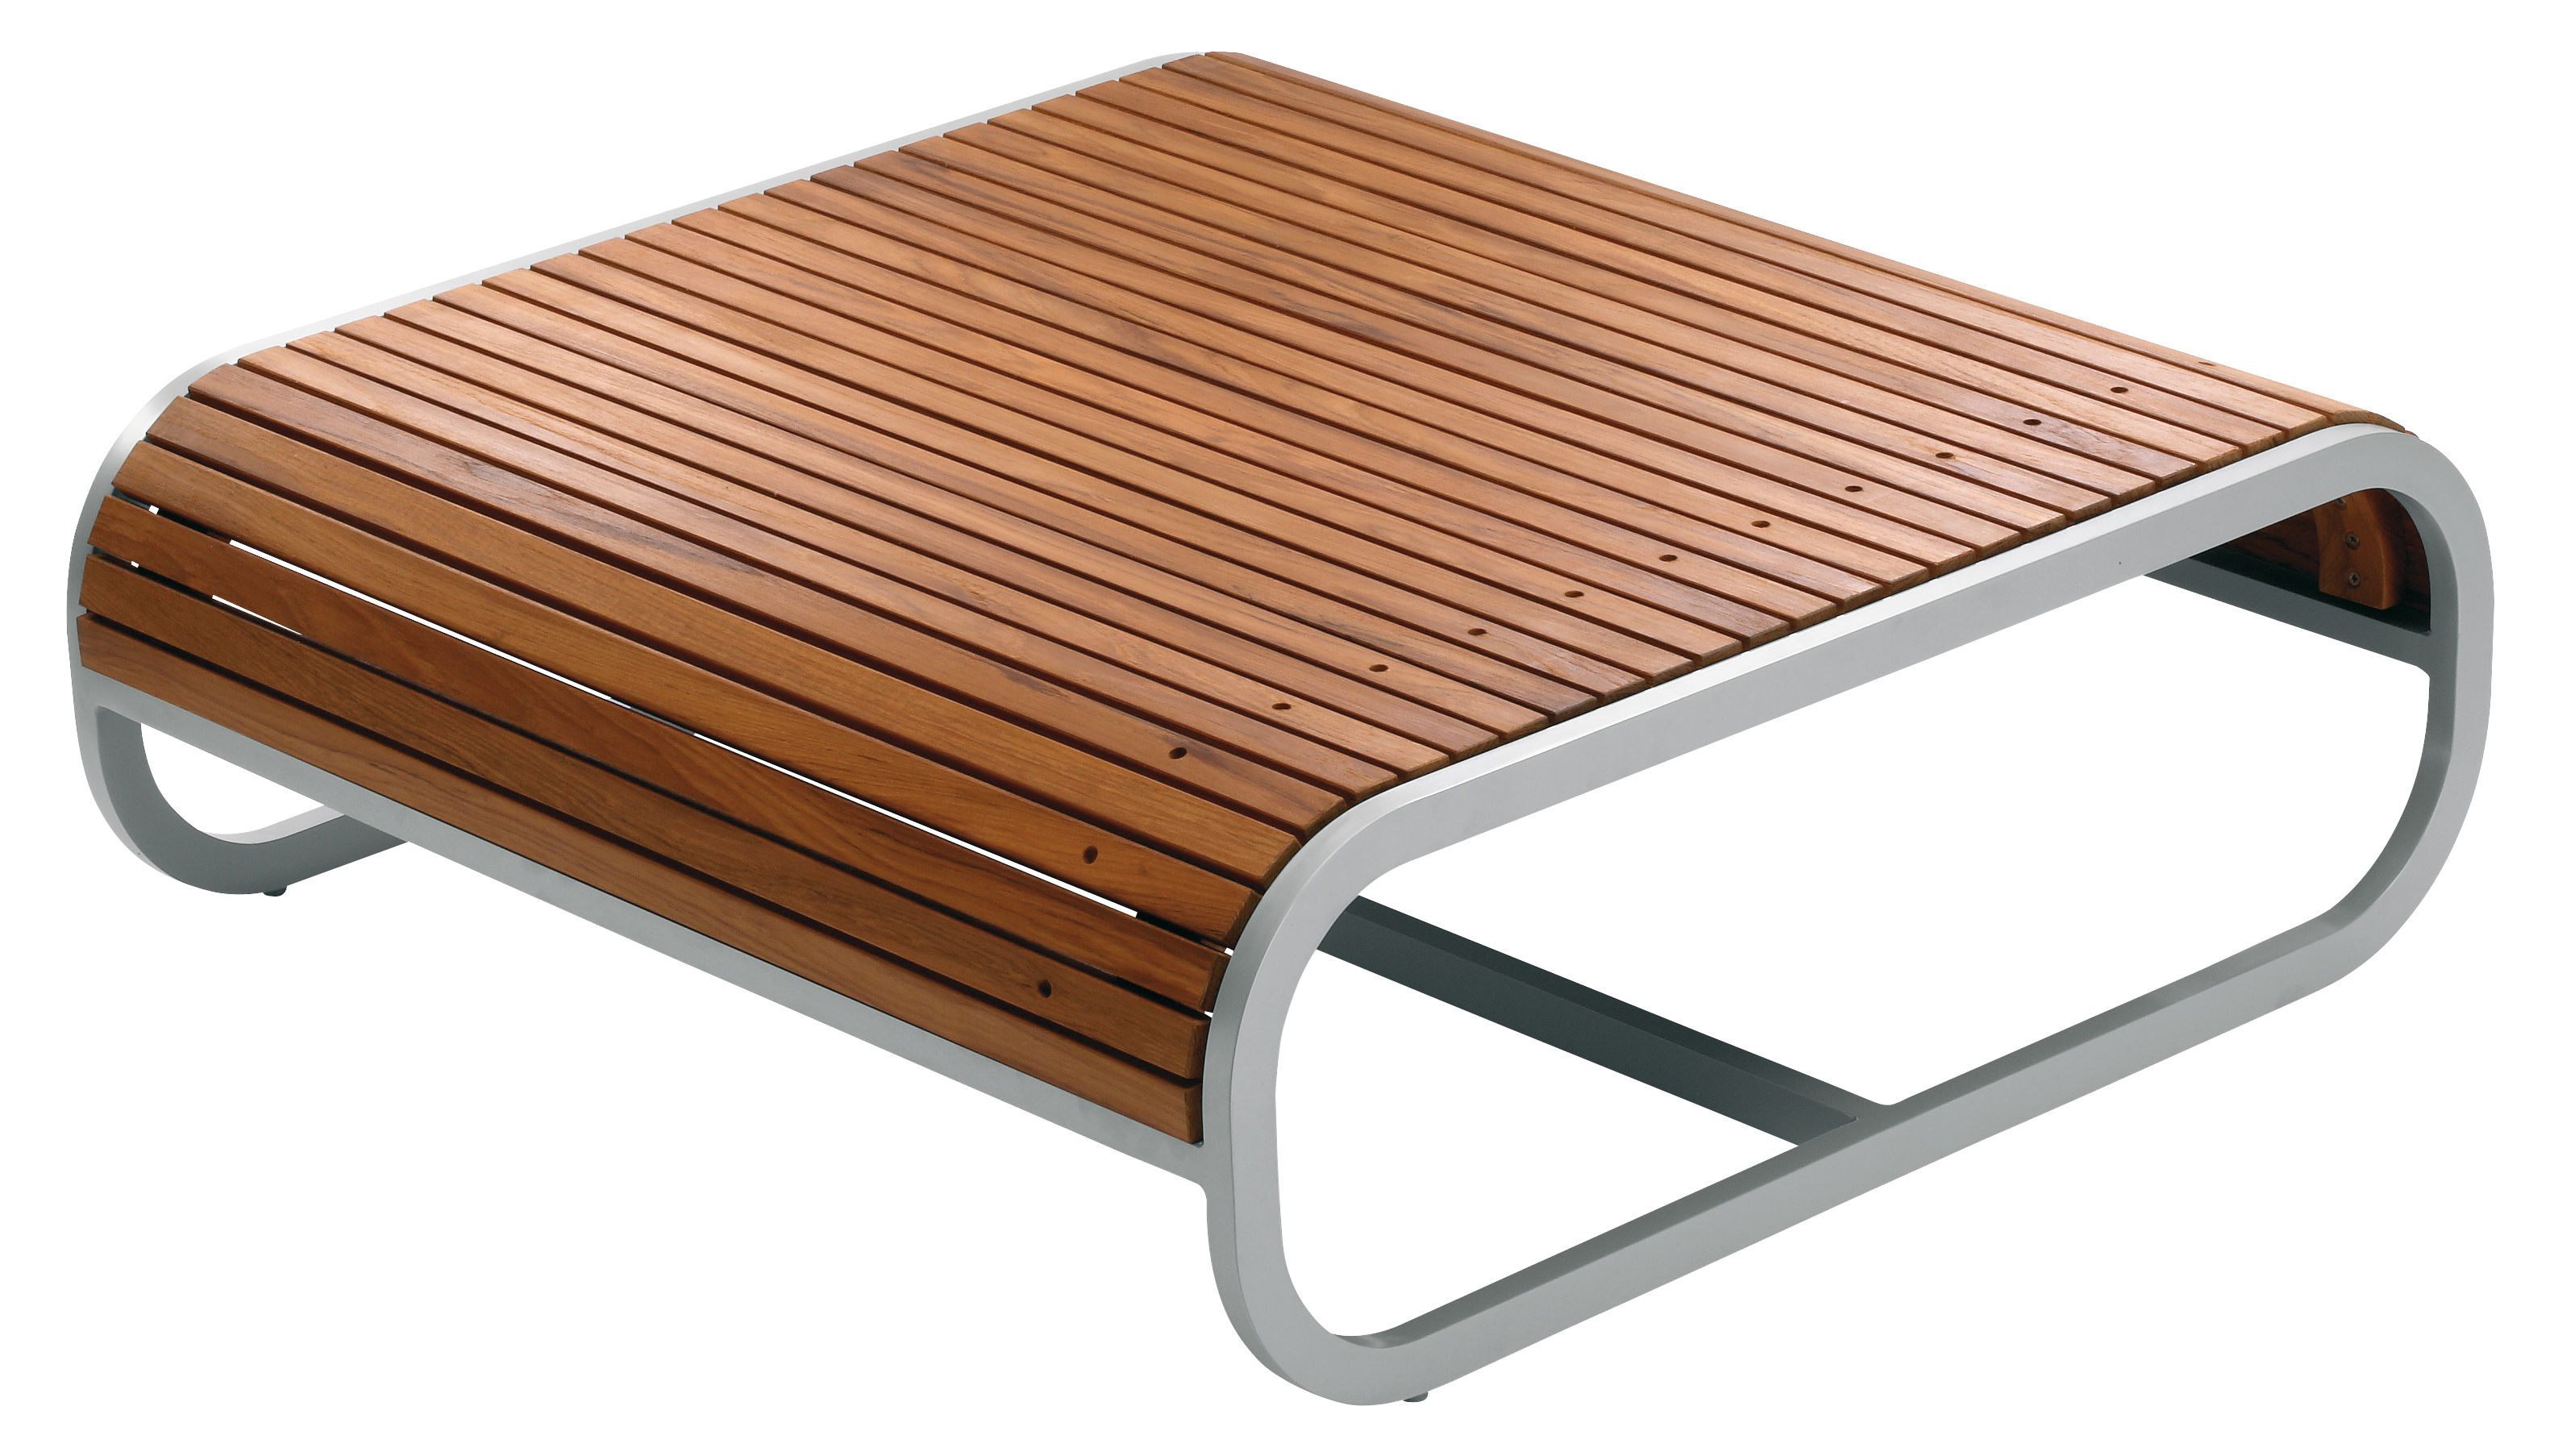 Furniture - Coffee Tables - Tandem Coffee table - Teak version by EGO Paris - Teck - Lacquered aluminium, Teak